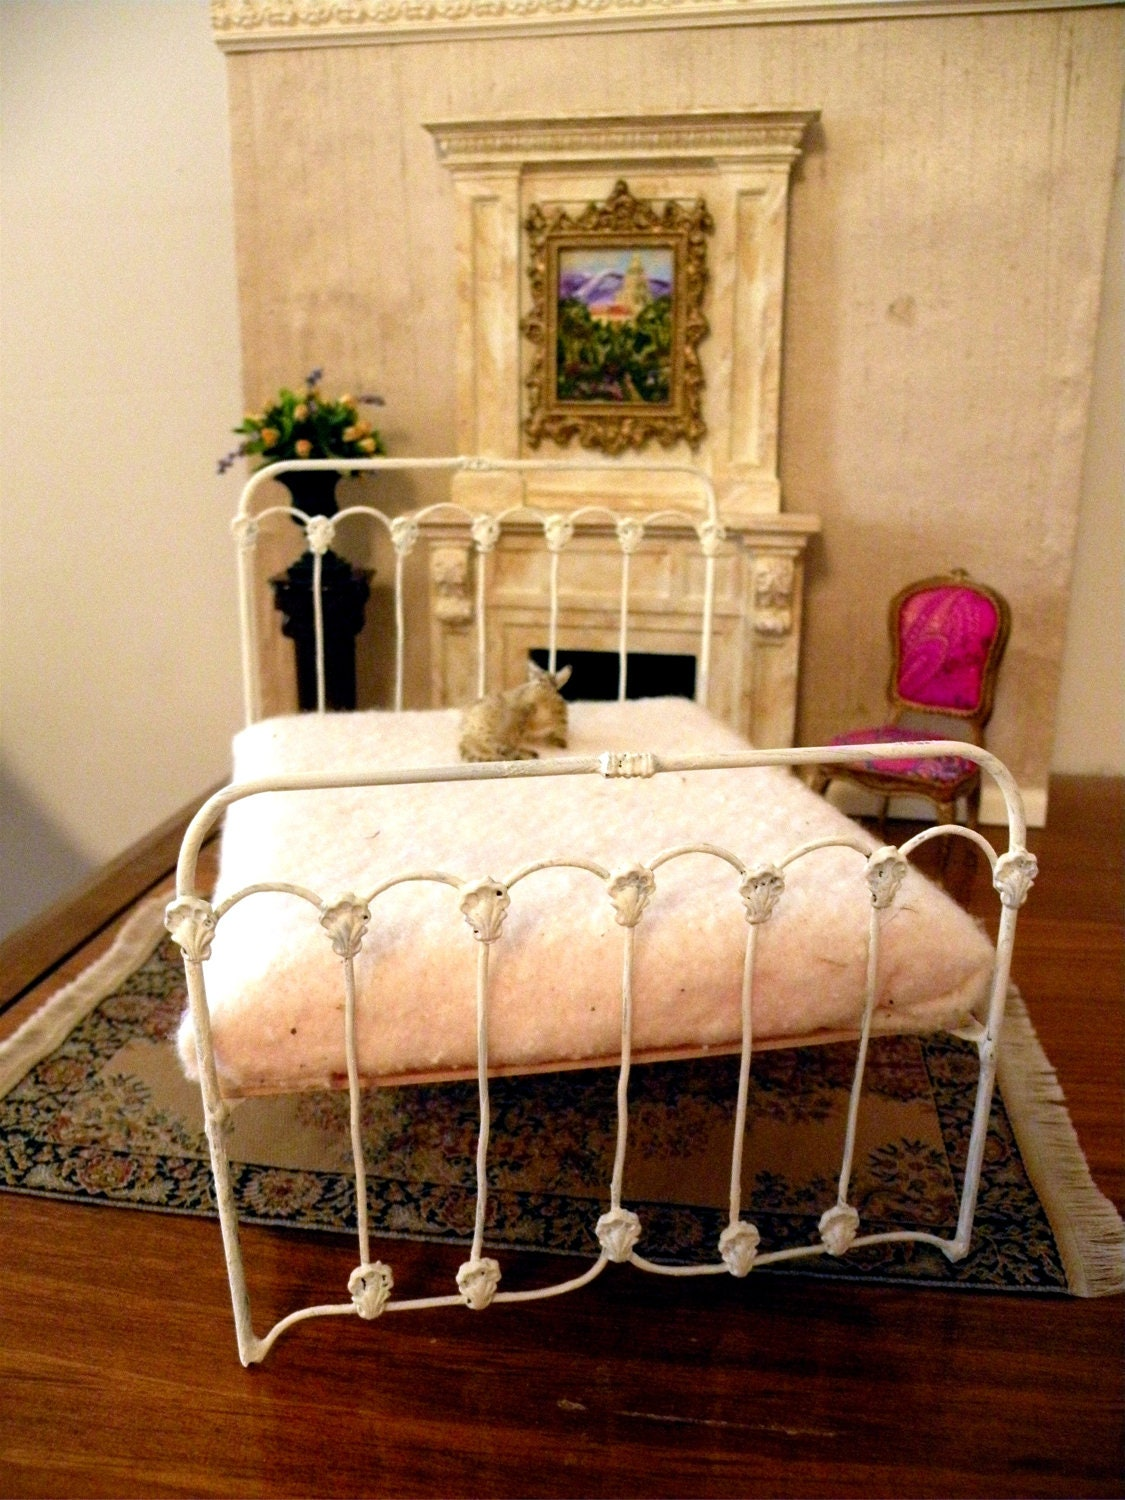 "Dollhouse Miniature 1:12 Scale Artisan Un-dressed Wrought Iron Bed ""Summerwind"" - ALifeInMiniature"